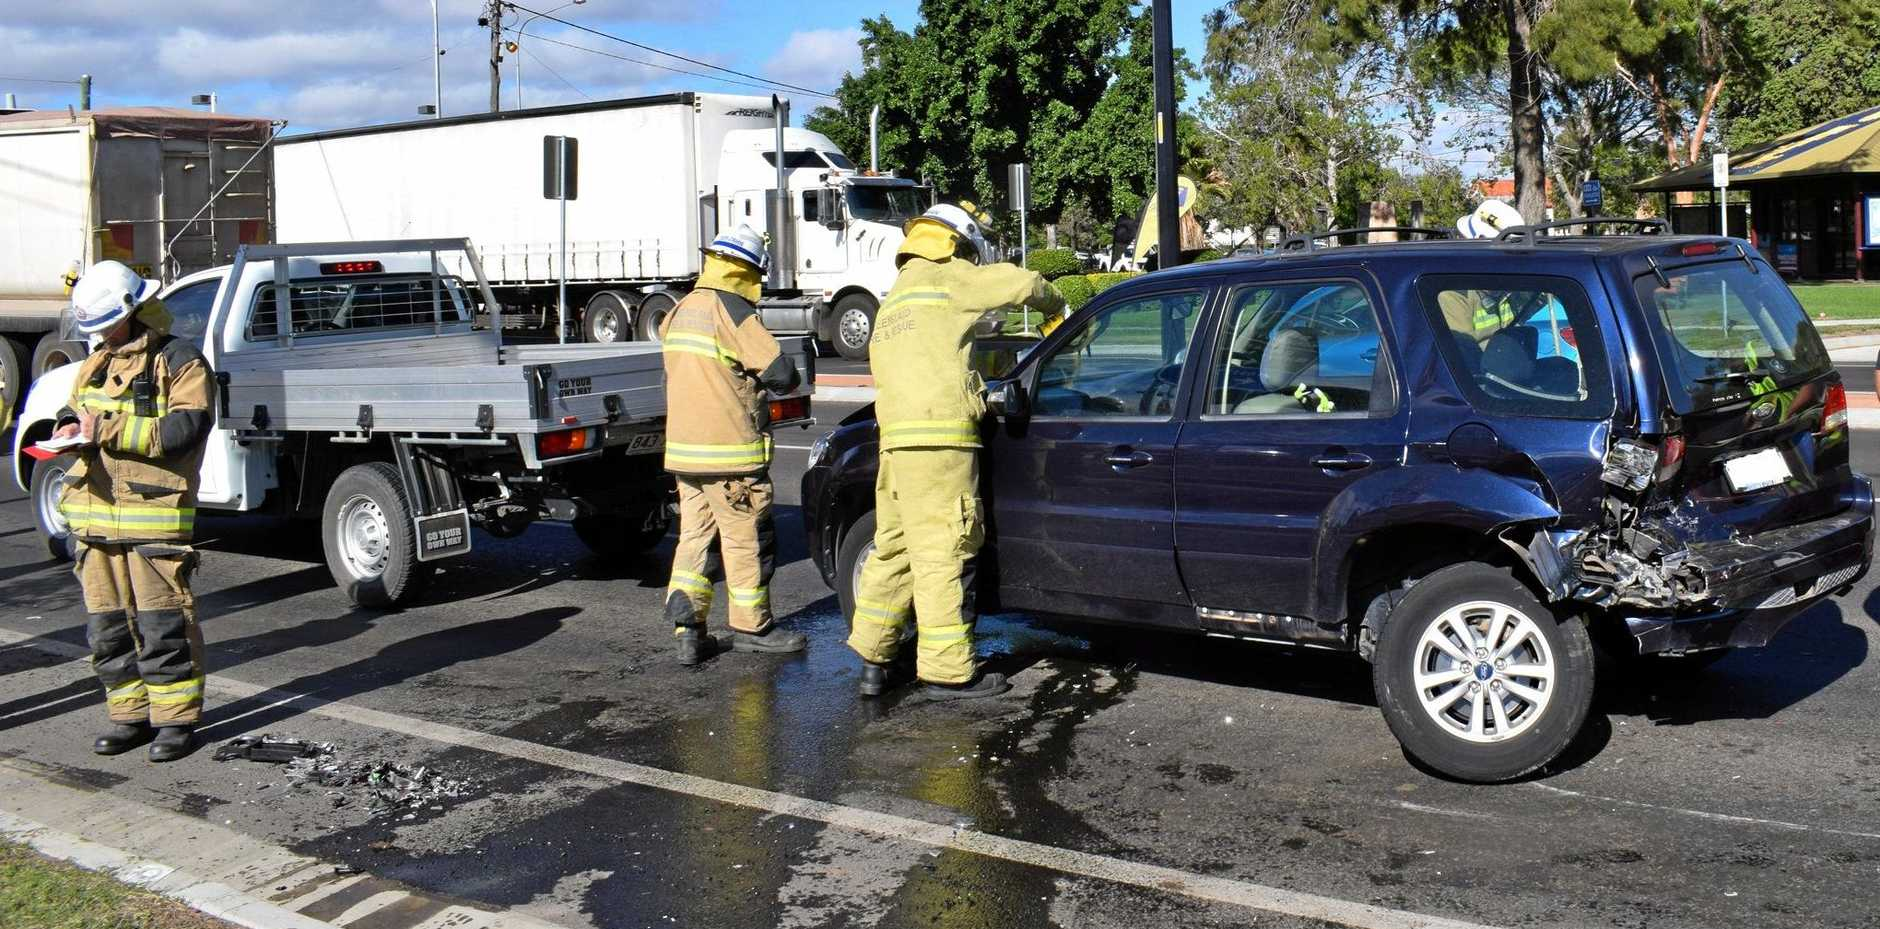 Three vehicles were involved in the collision on Drayton St this morning